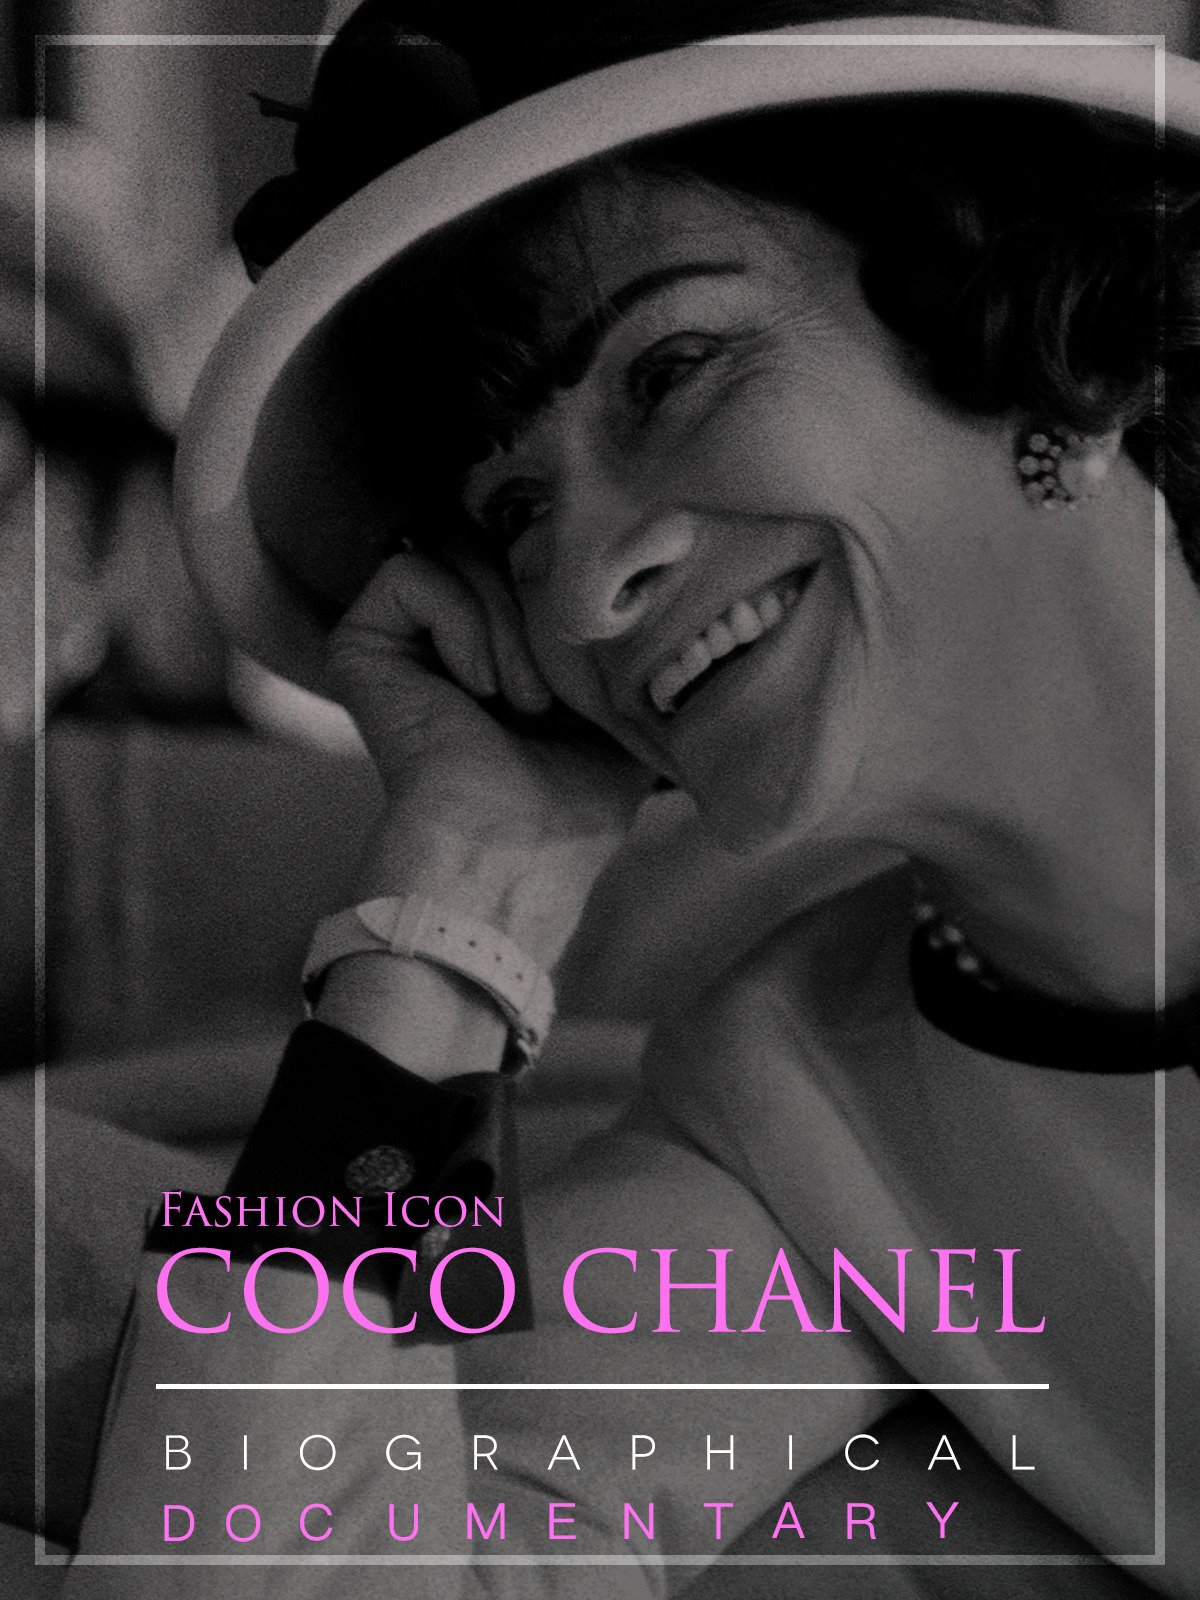 Fashion Icon Coco Chanel Biographical Documentary